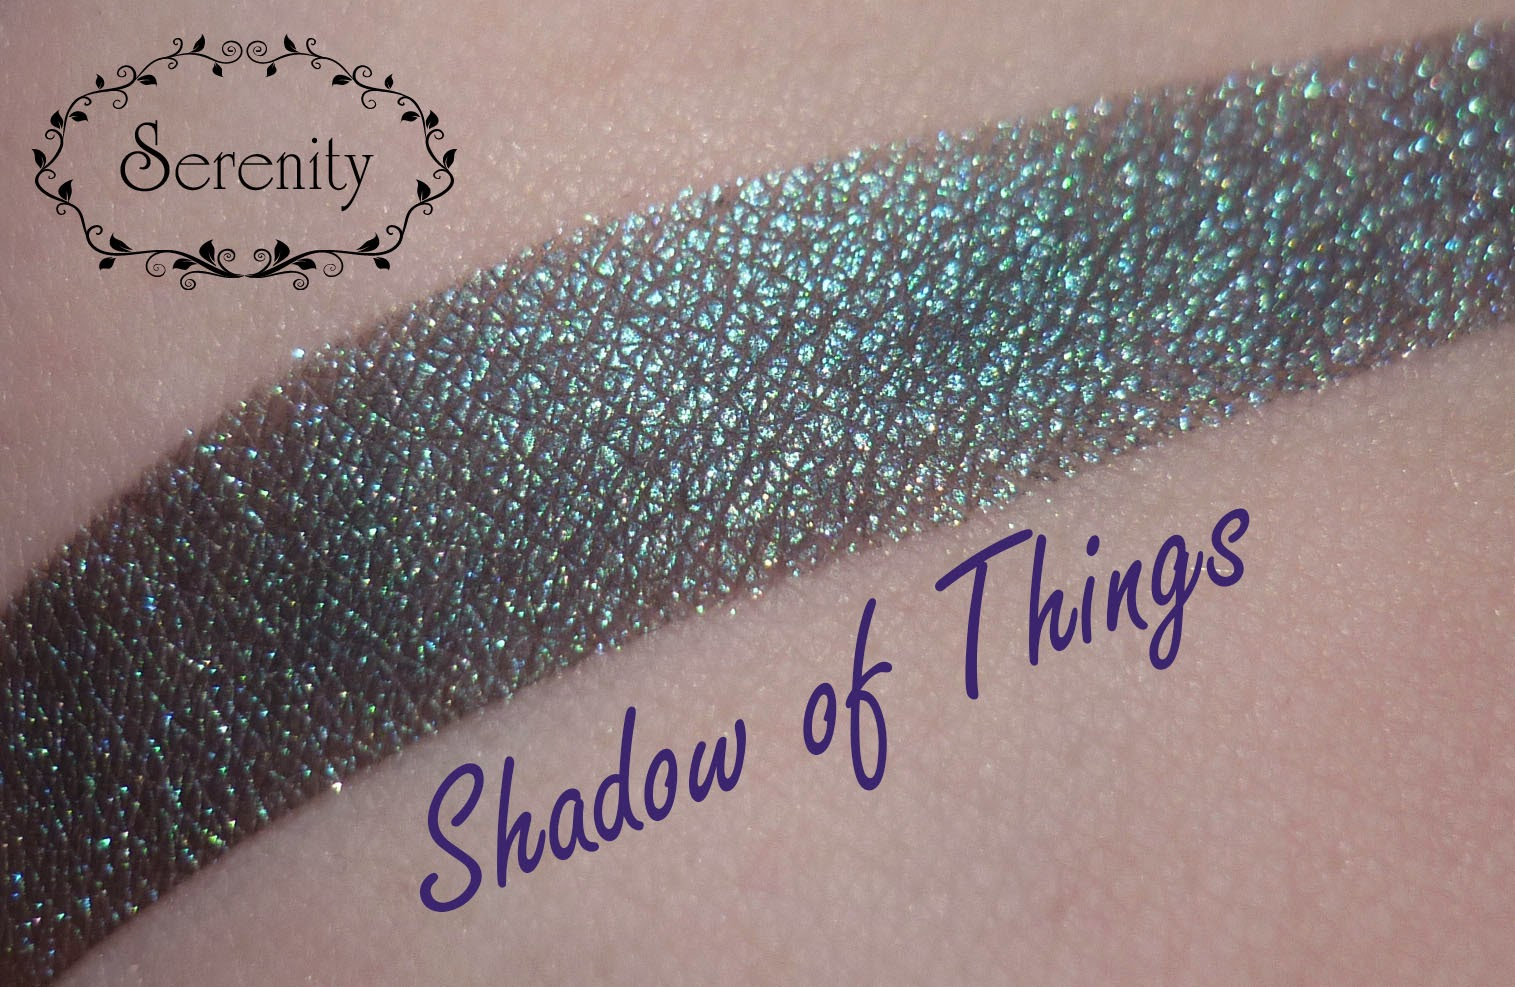 Notoriously Morbid Shadow of Things Swatch